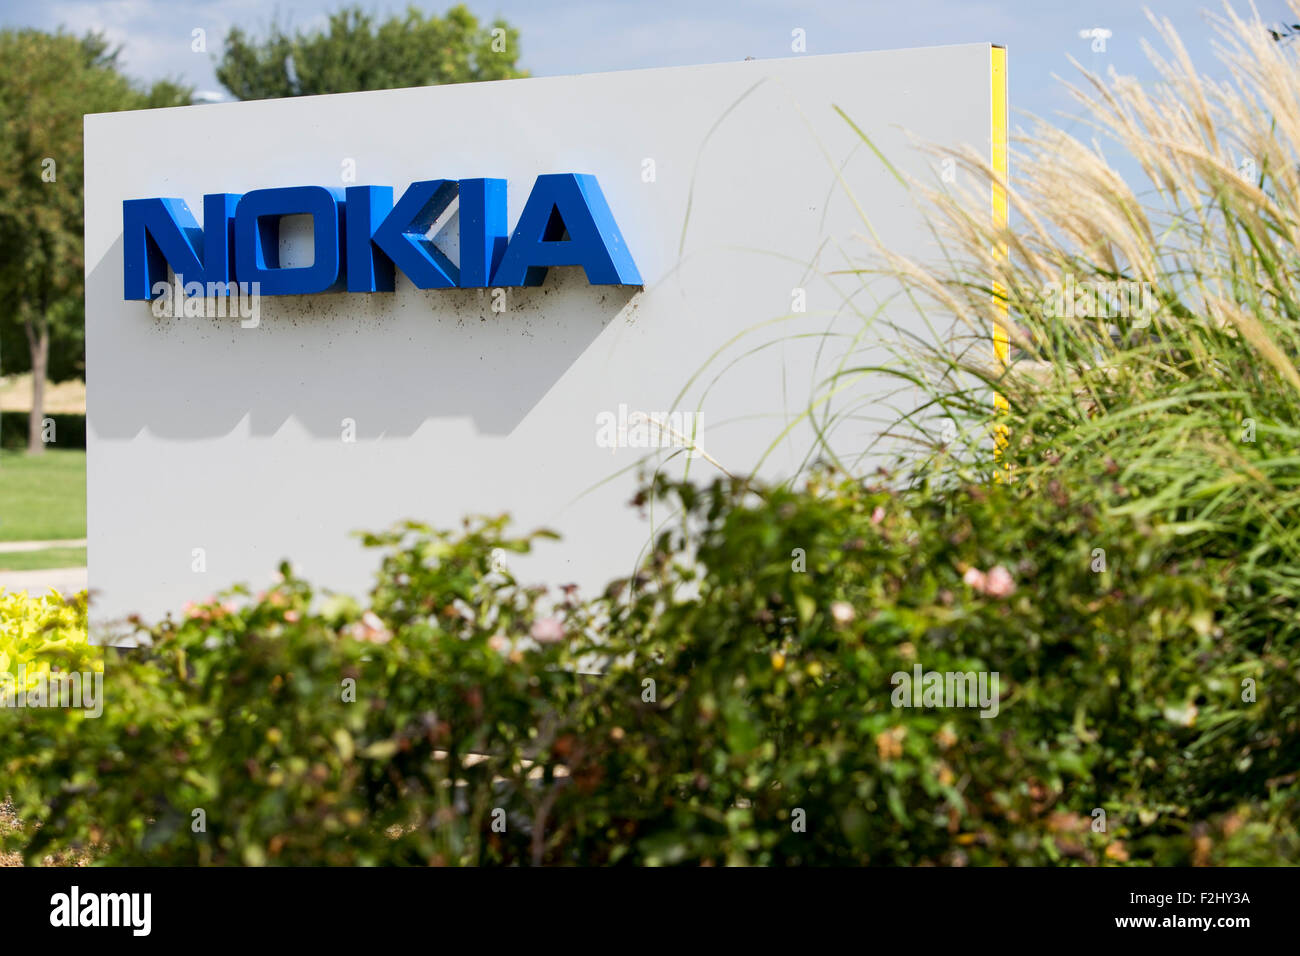 A logo sign outside of a facility occupied by the Nokia Corporation in Irving, Texas on September 13, 2015. - Stock Image